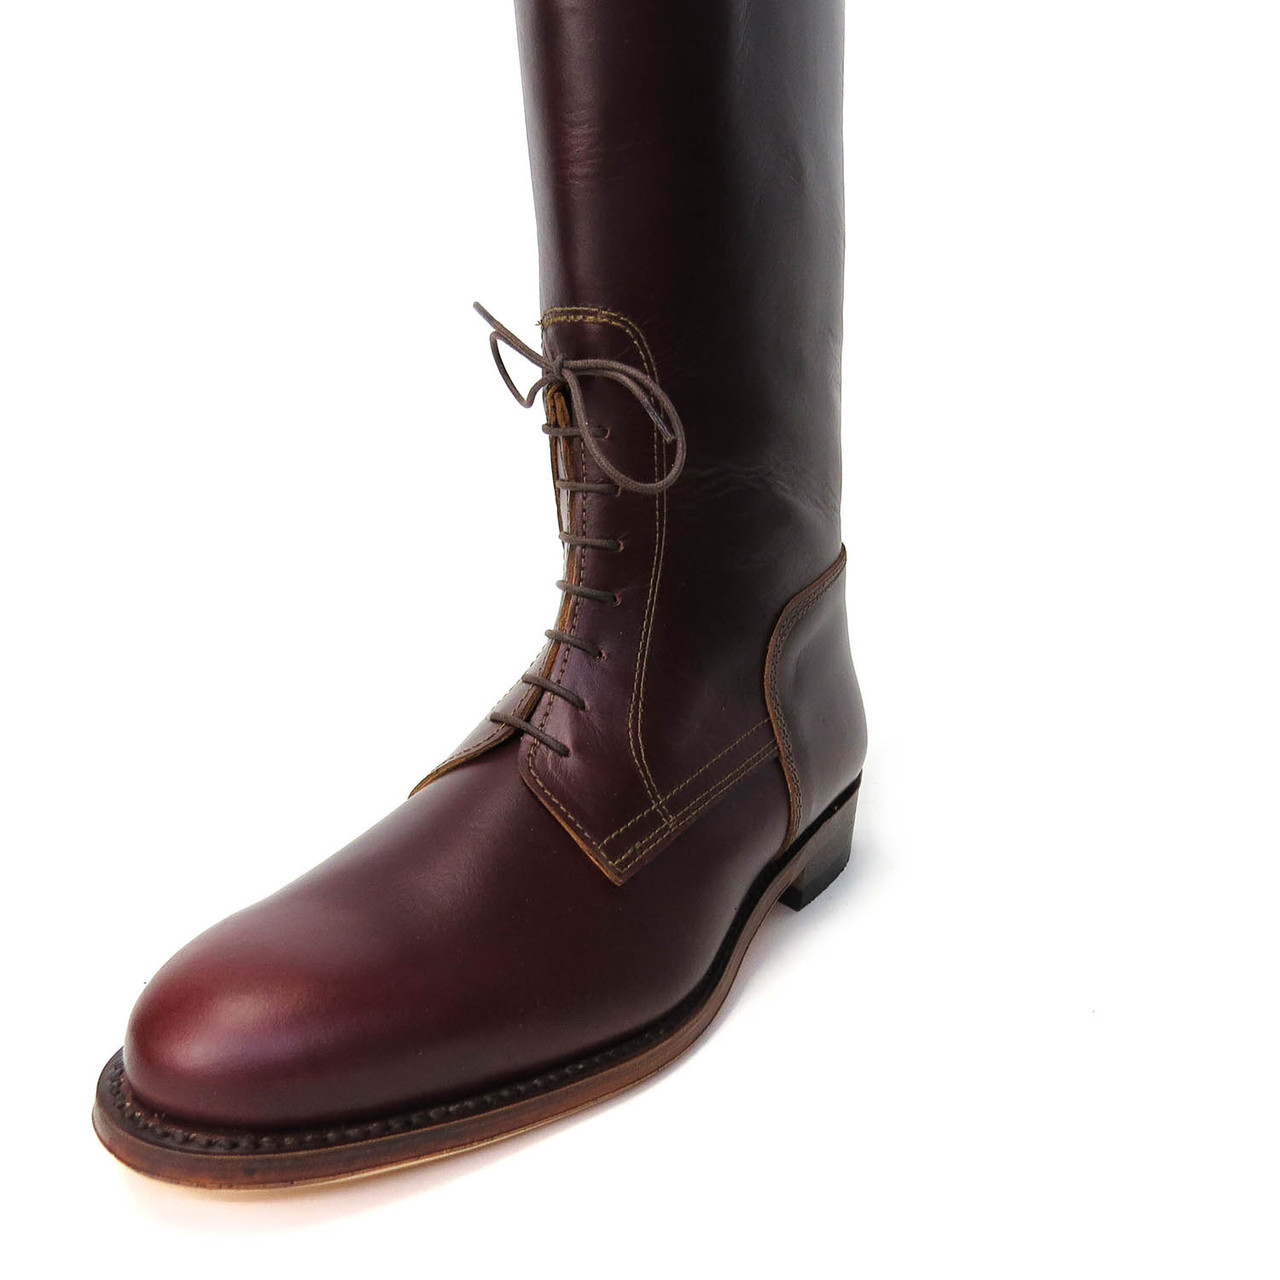 American Officer Boots